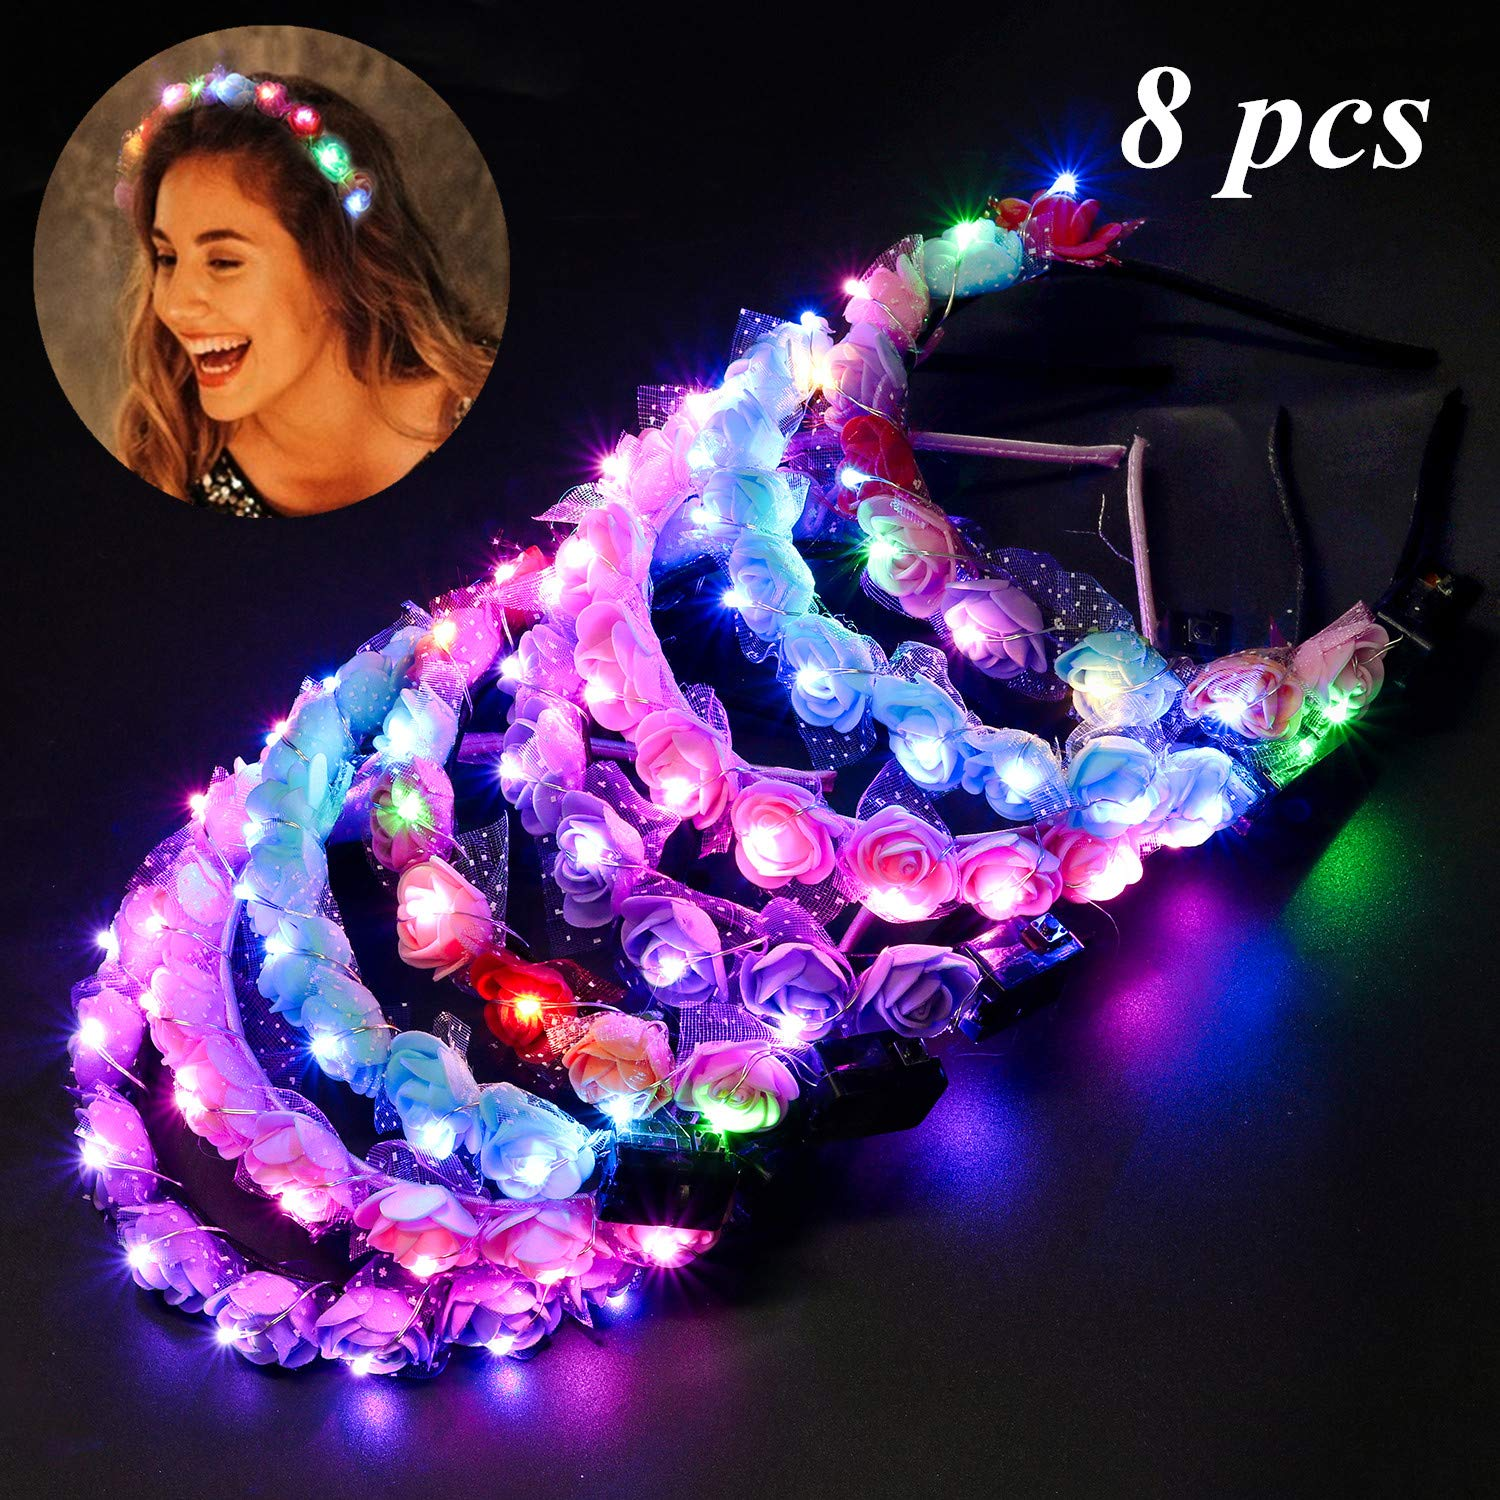 LED headbands